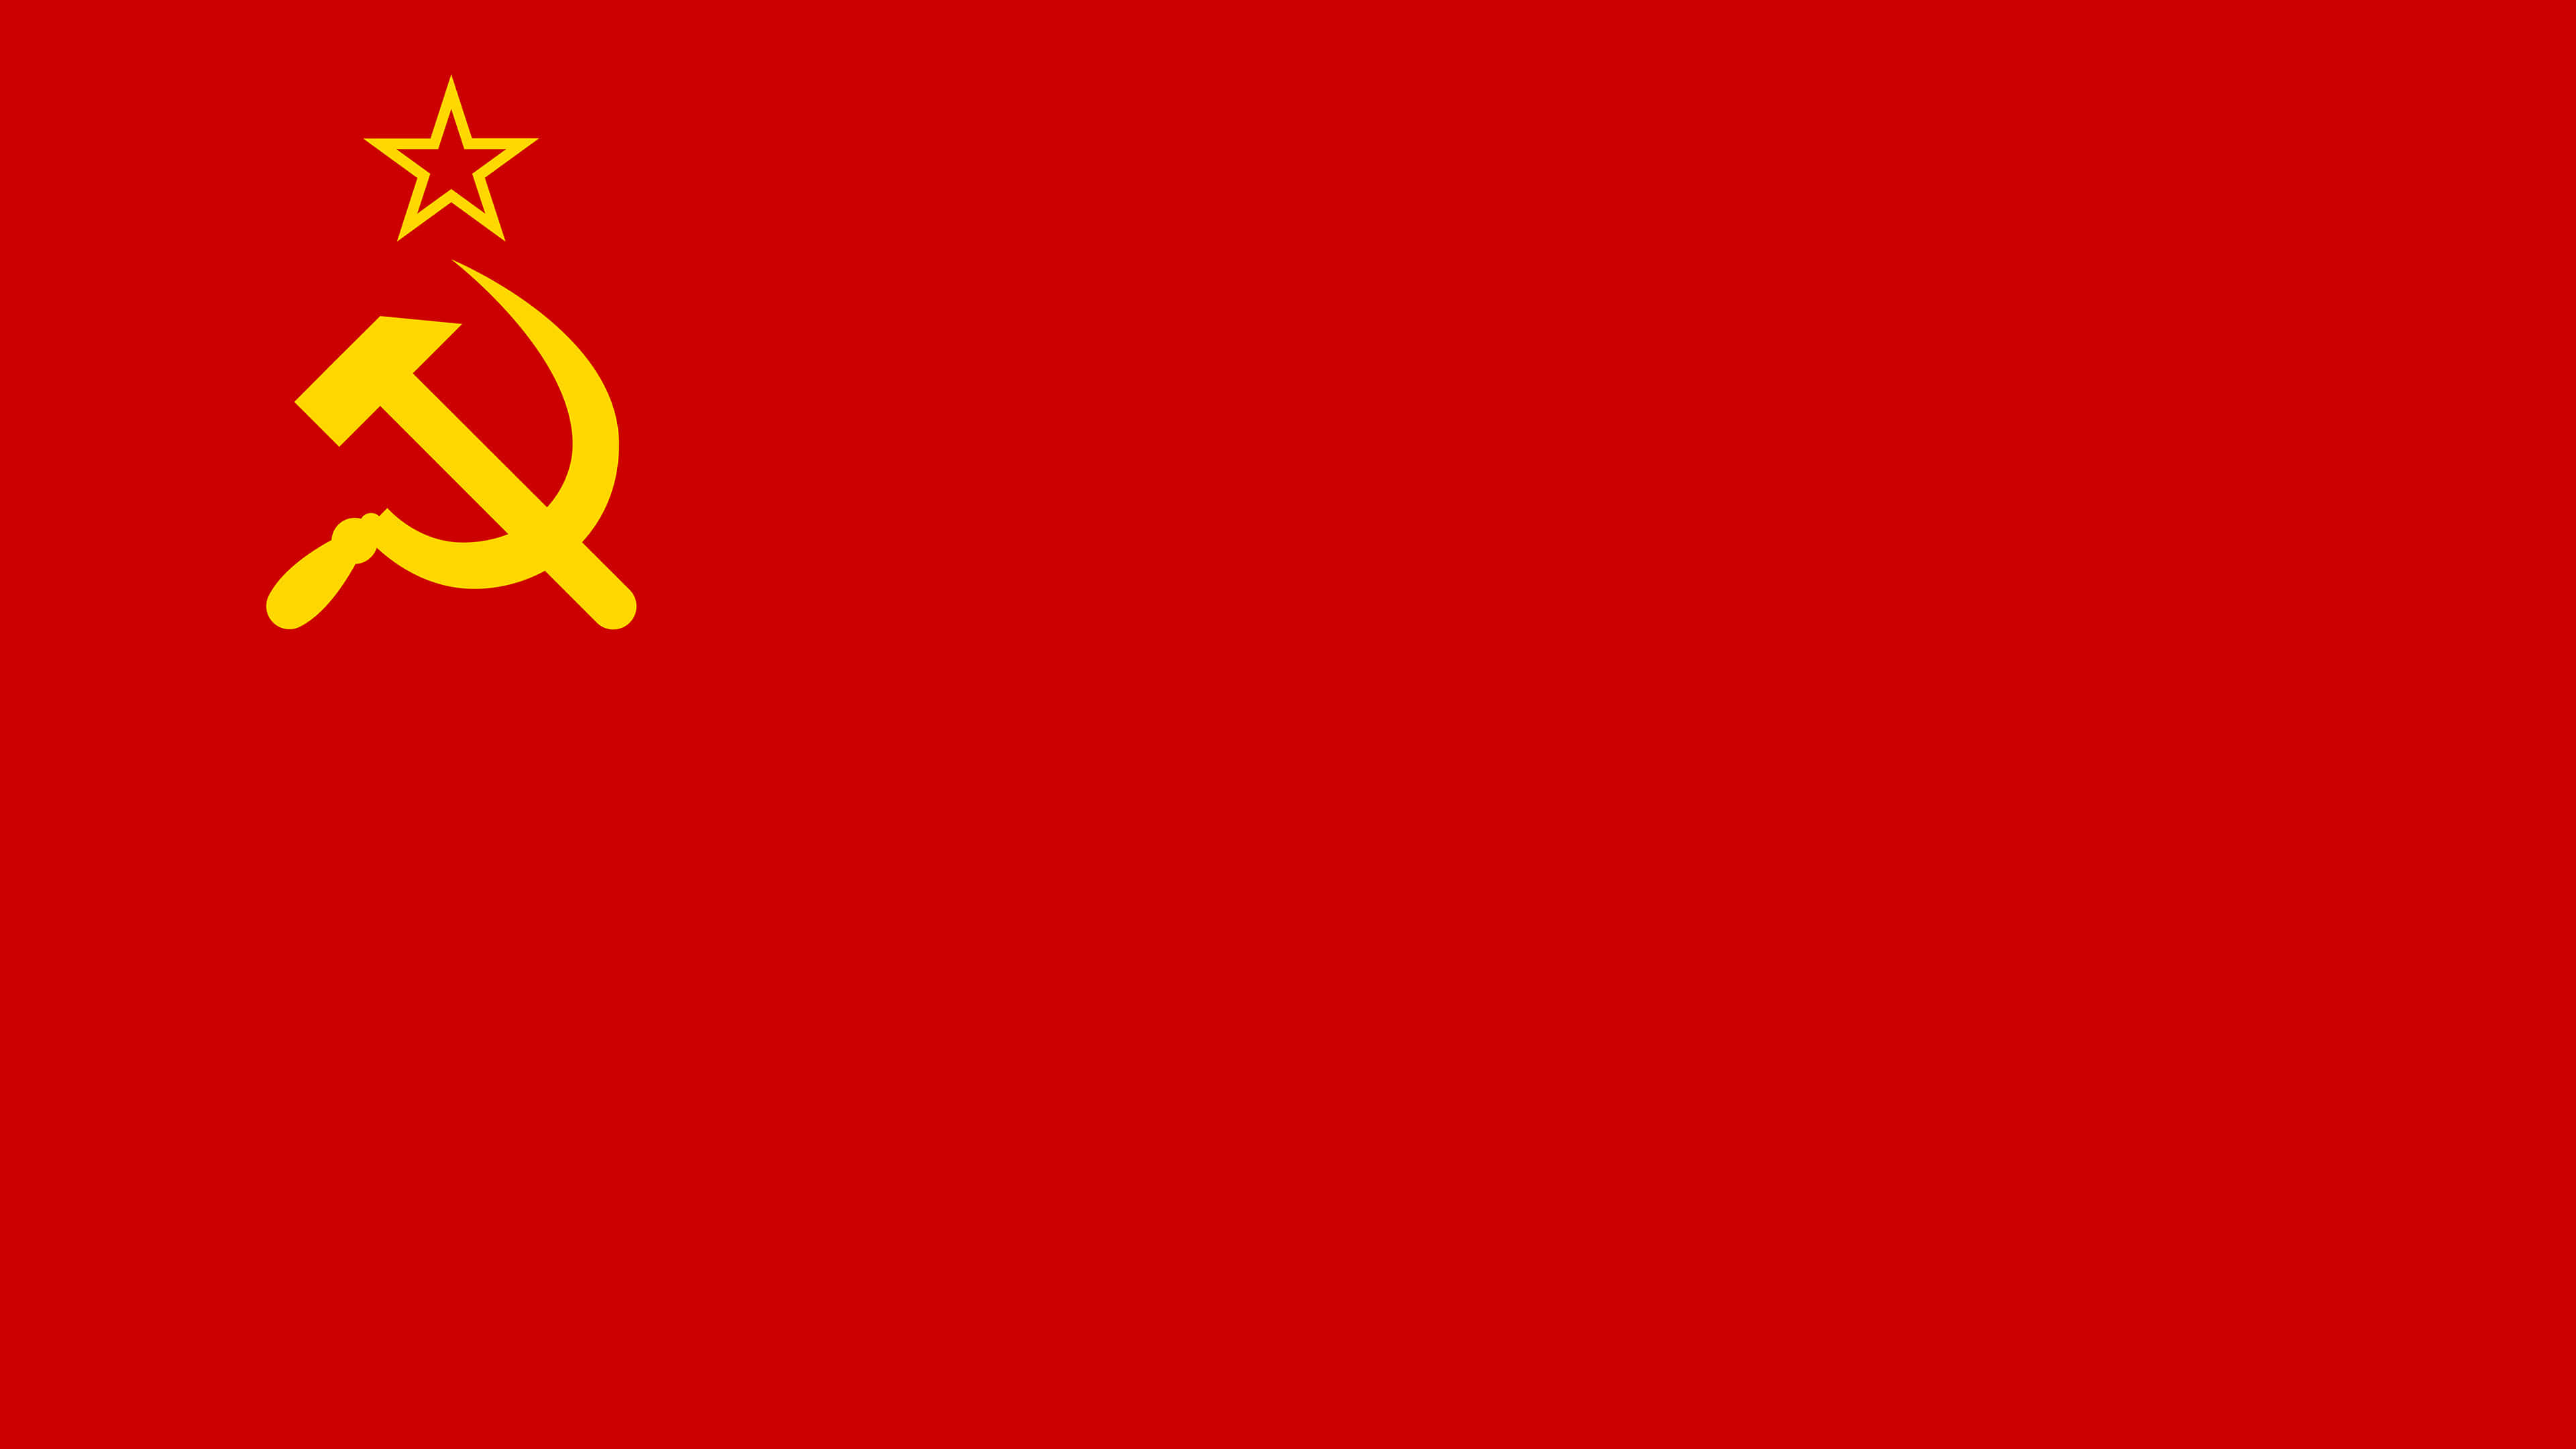 soviet union flag uhd 4k wallpaper